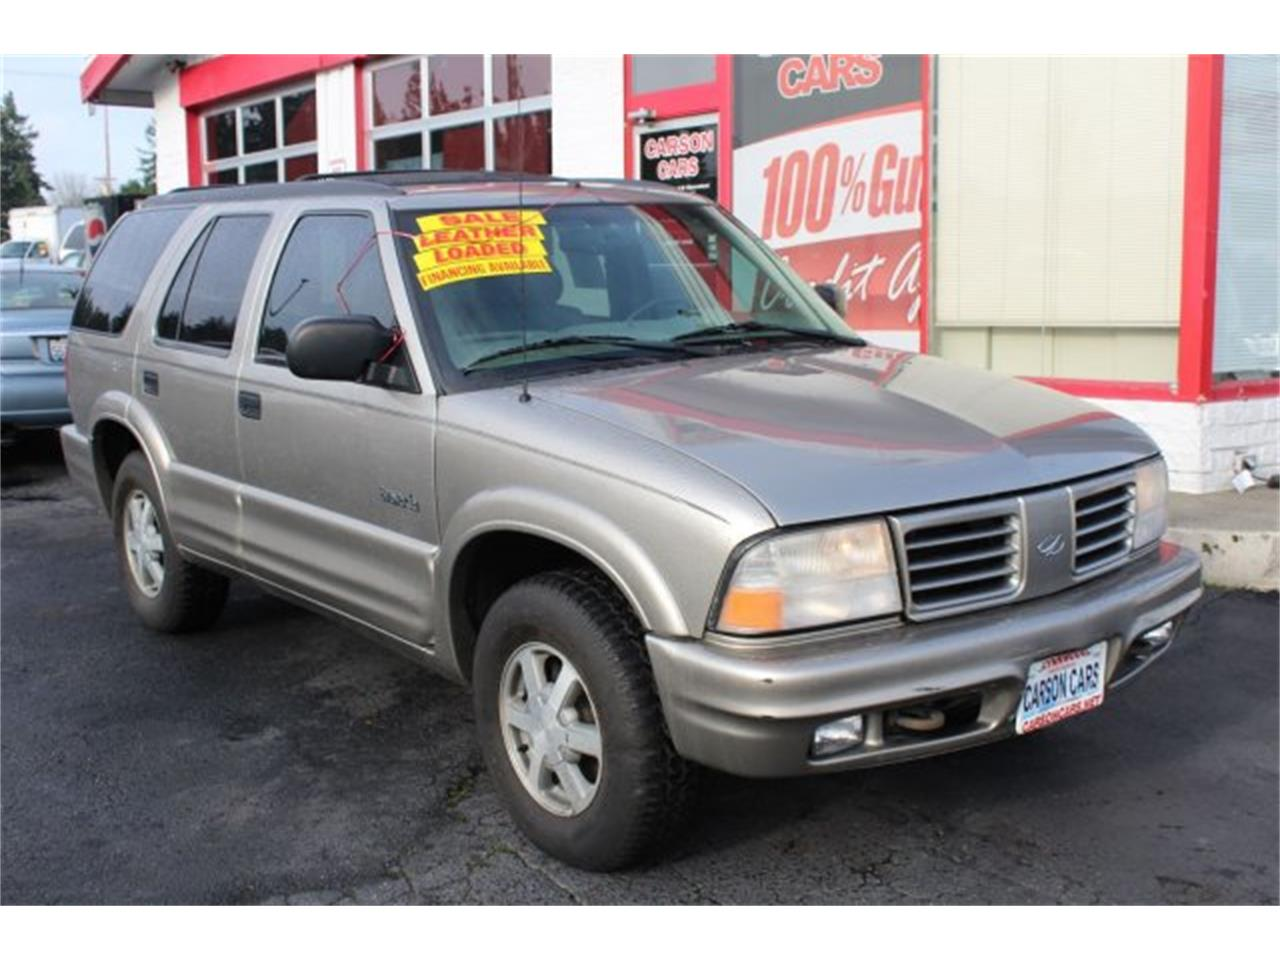 2000 oldsmobile bravada for sale classiccars com cc 924737 2000 oldsmobile bravada for sale